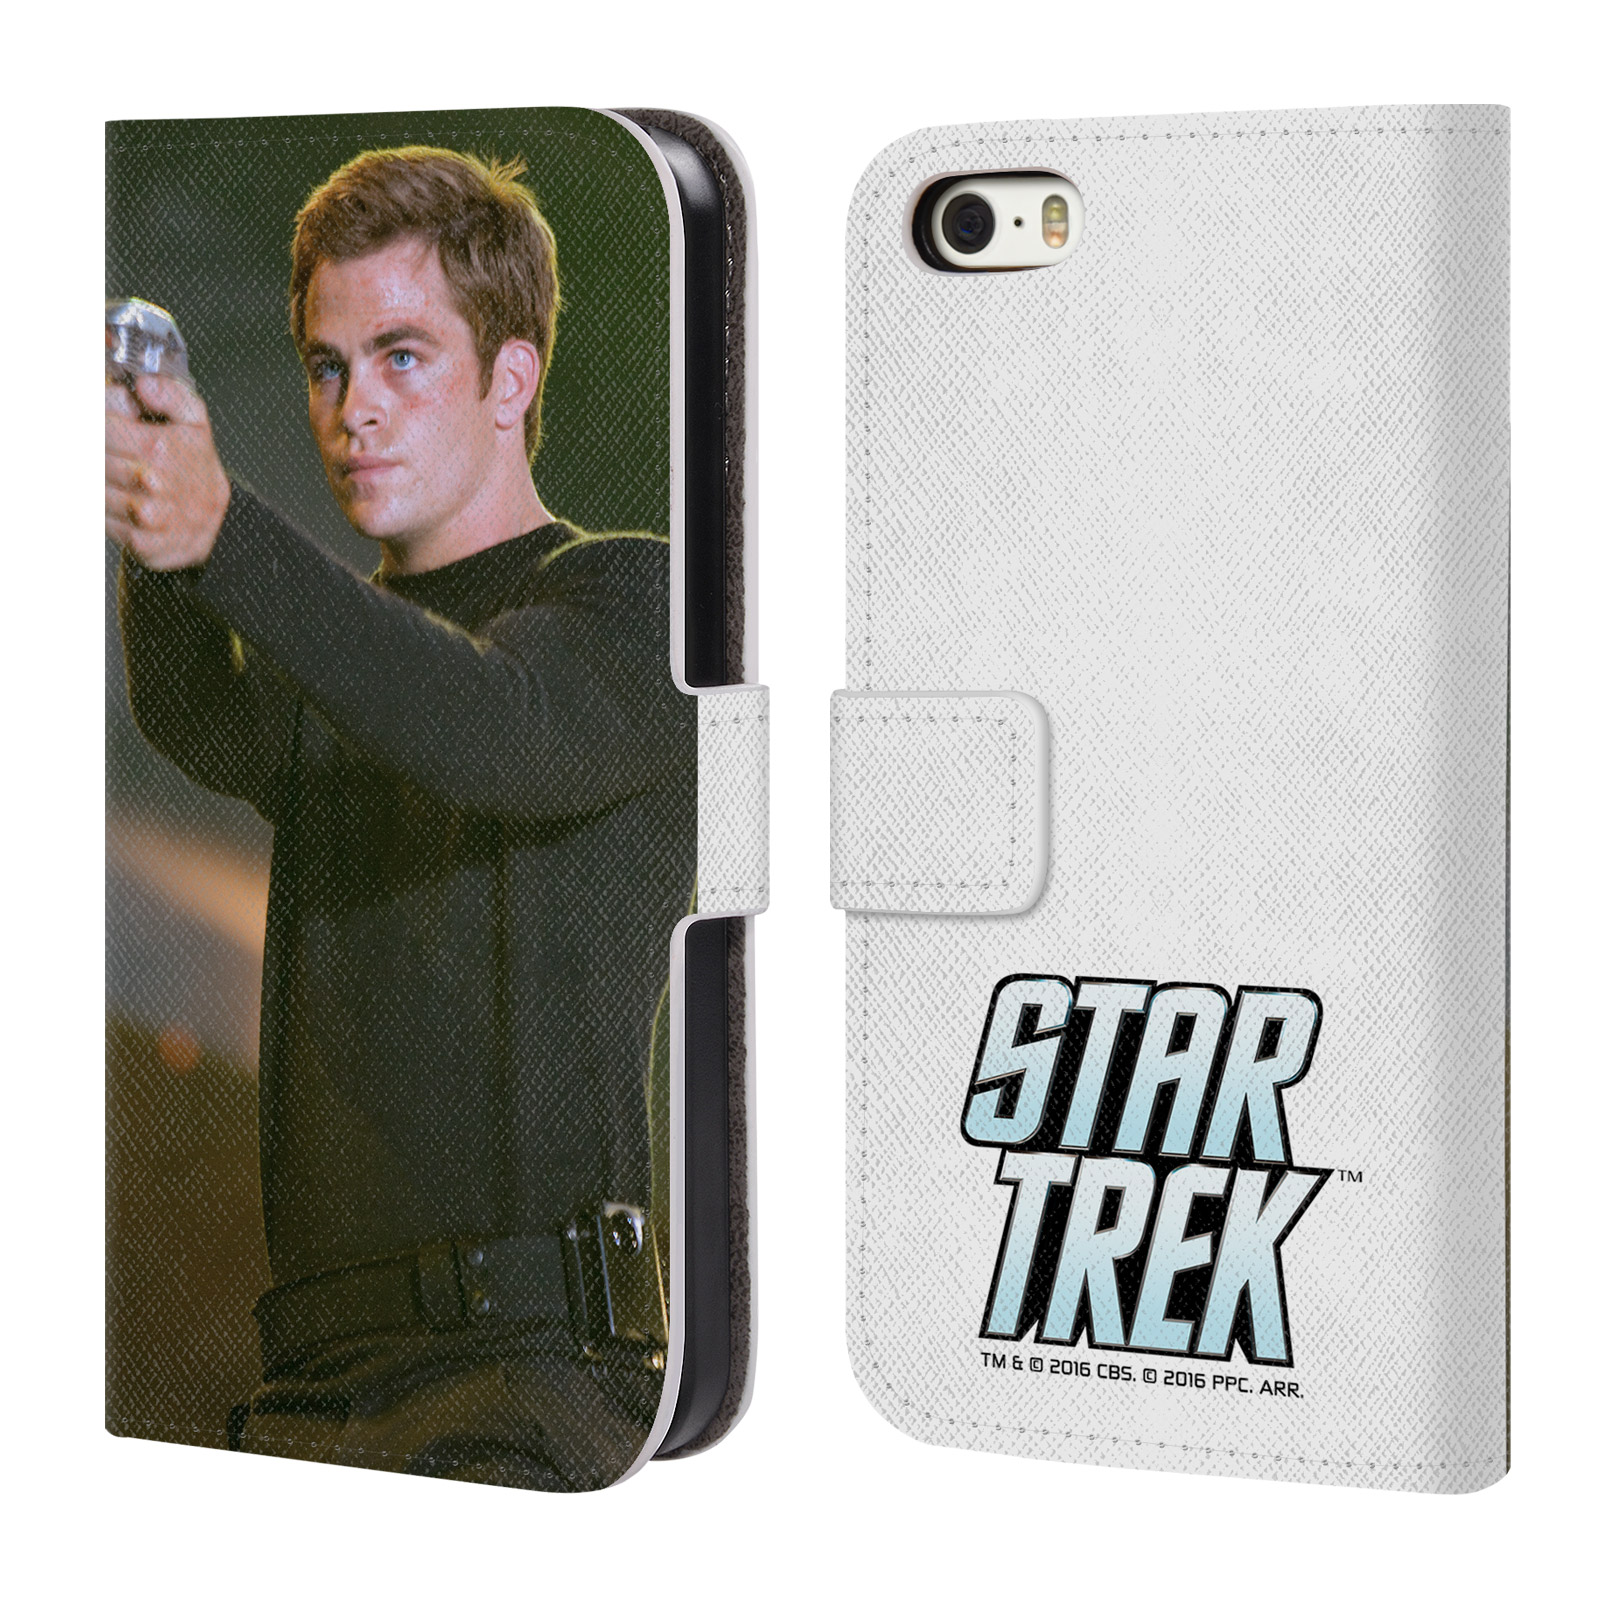 OFFICIAL STAR TREK MOVIE STILLS REBOOT XI LEATHER BOOK WALLET CASE COVER FOR APPLE IPHONE PHONES